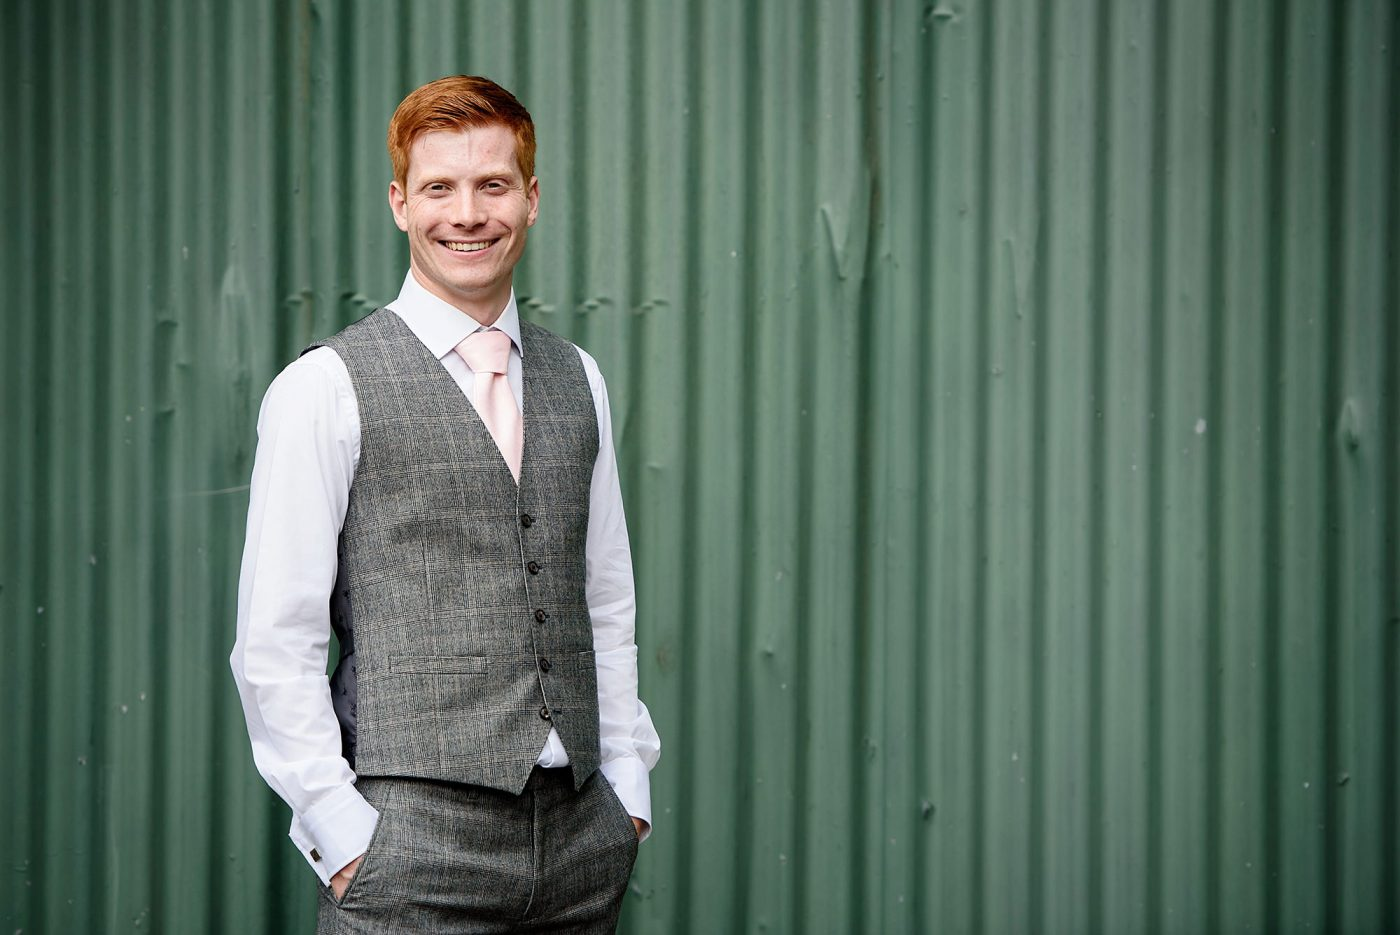 photo of the groom in front of green barn